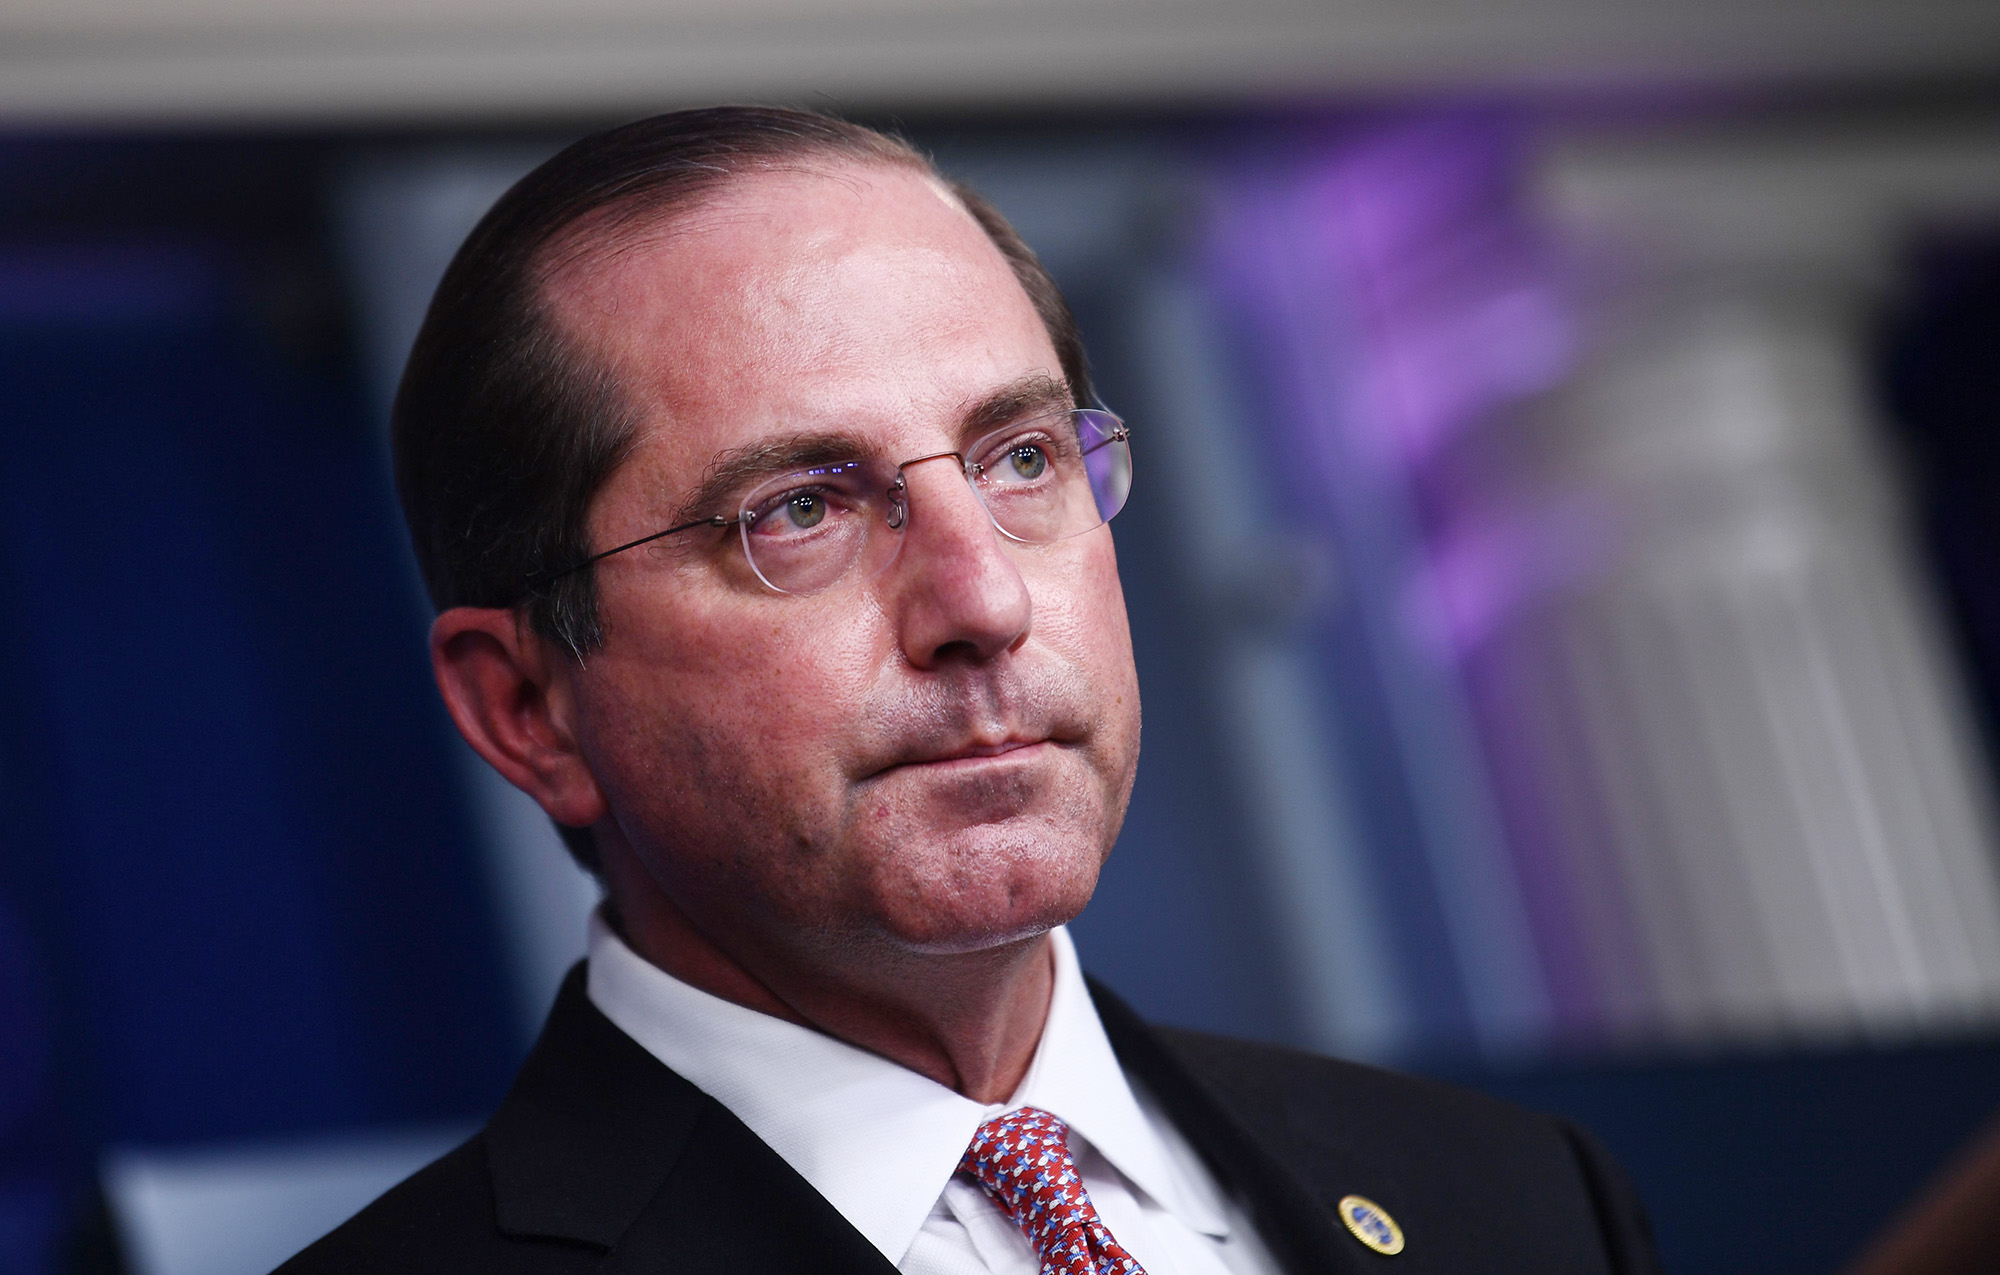 U.S. Secretary of Health and Human Services Alex Azar speaks during a press briefing at the White House in Washington DC, on November 19.